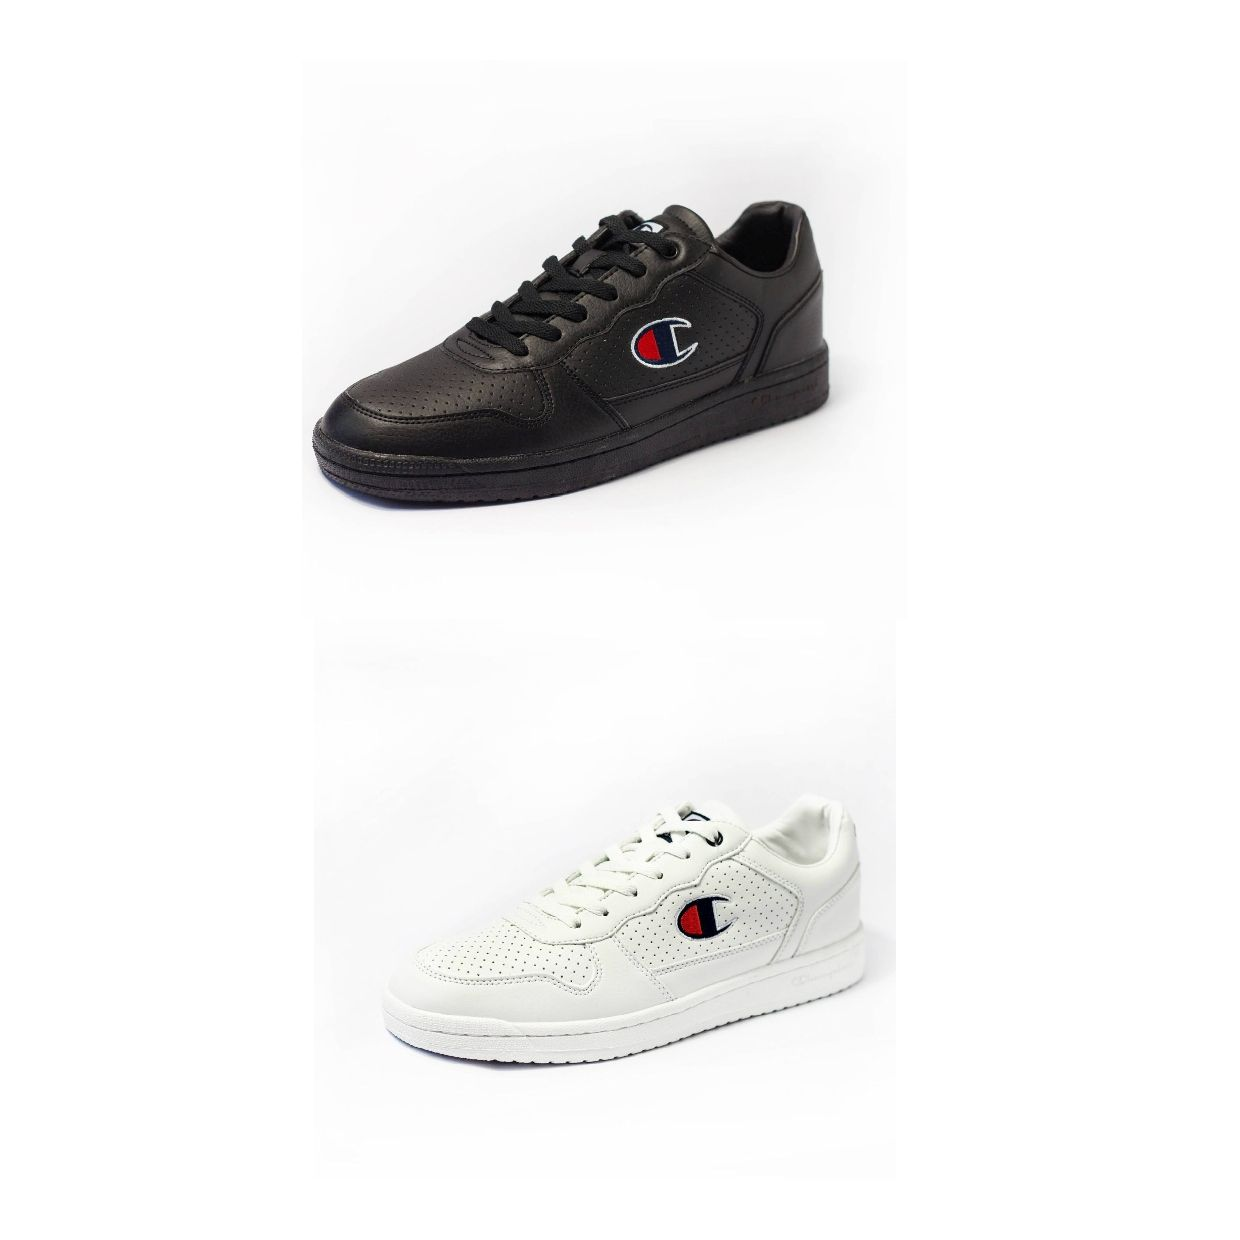 Champion Chicago Low Sneaker Halbschuhe Textil Synthetik Herren Schuhe FS19